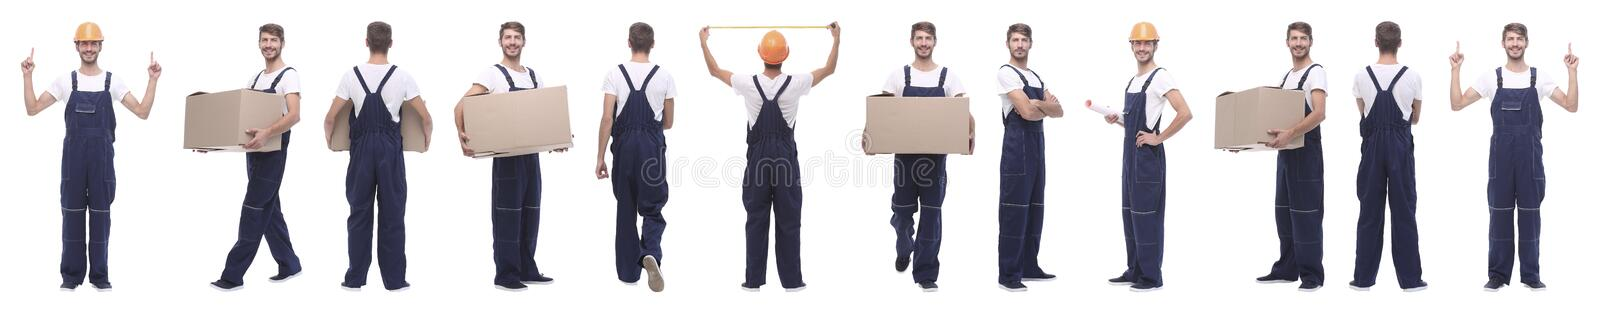 Panoramic collage of skilled handyman isolated on white stock image